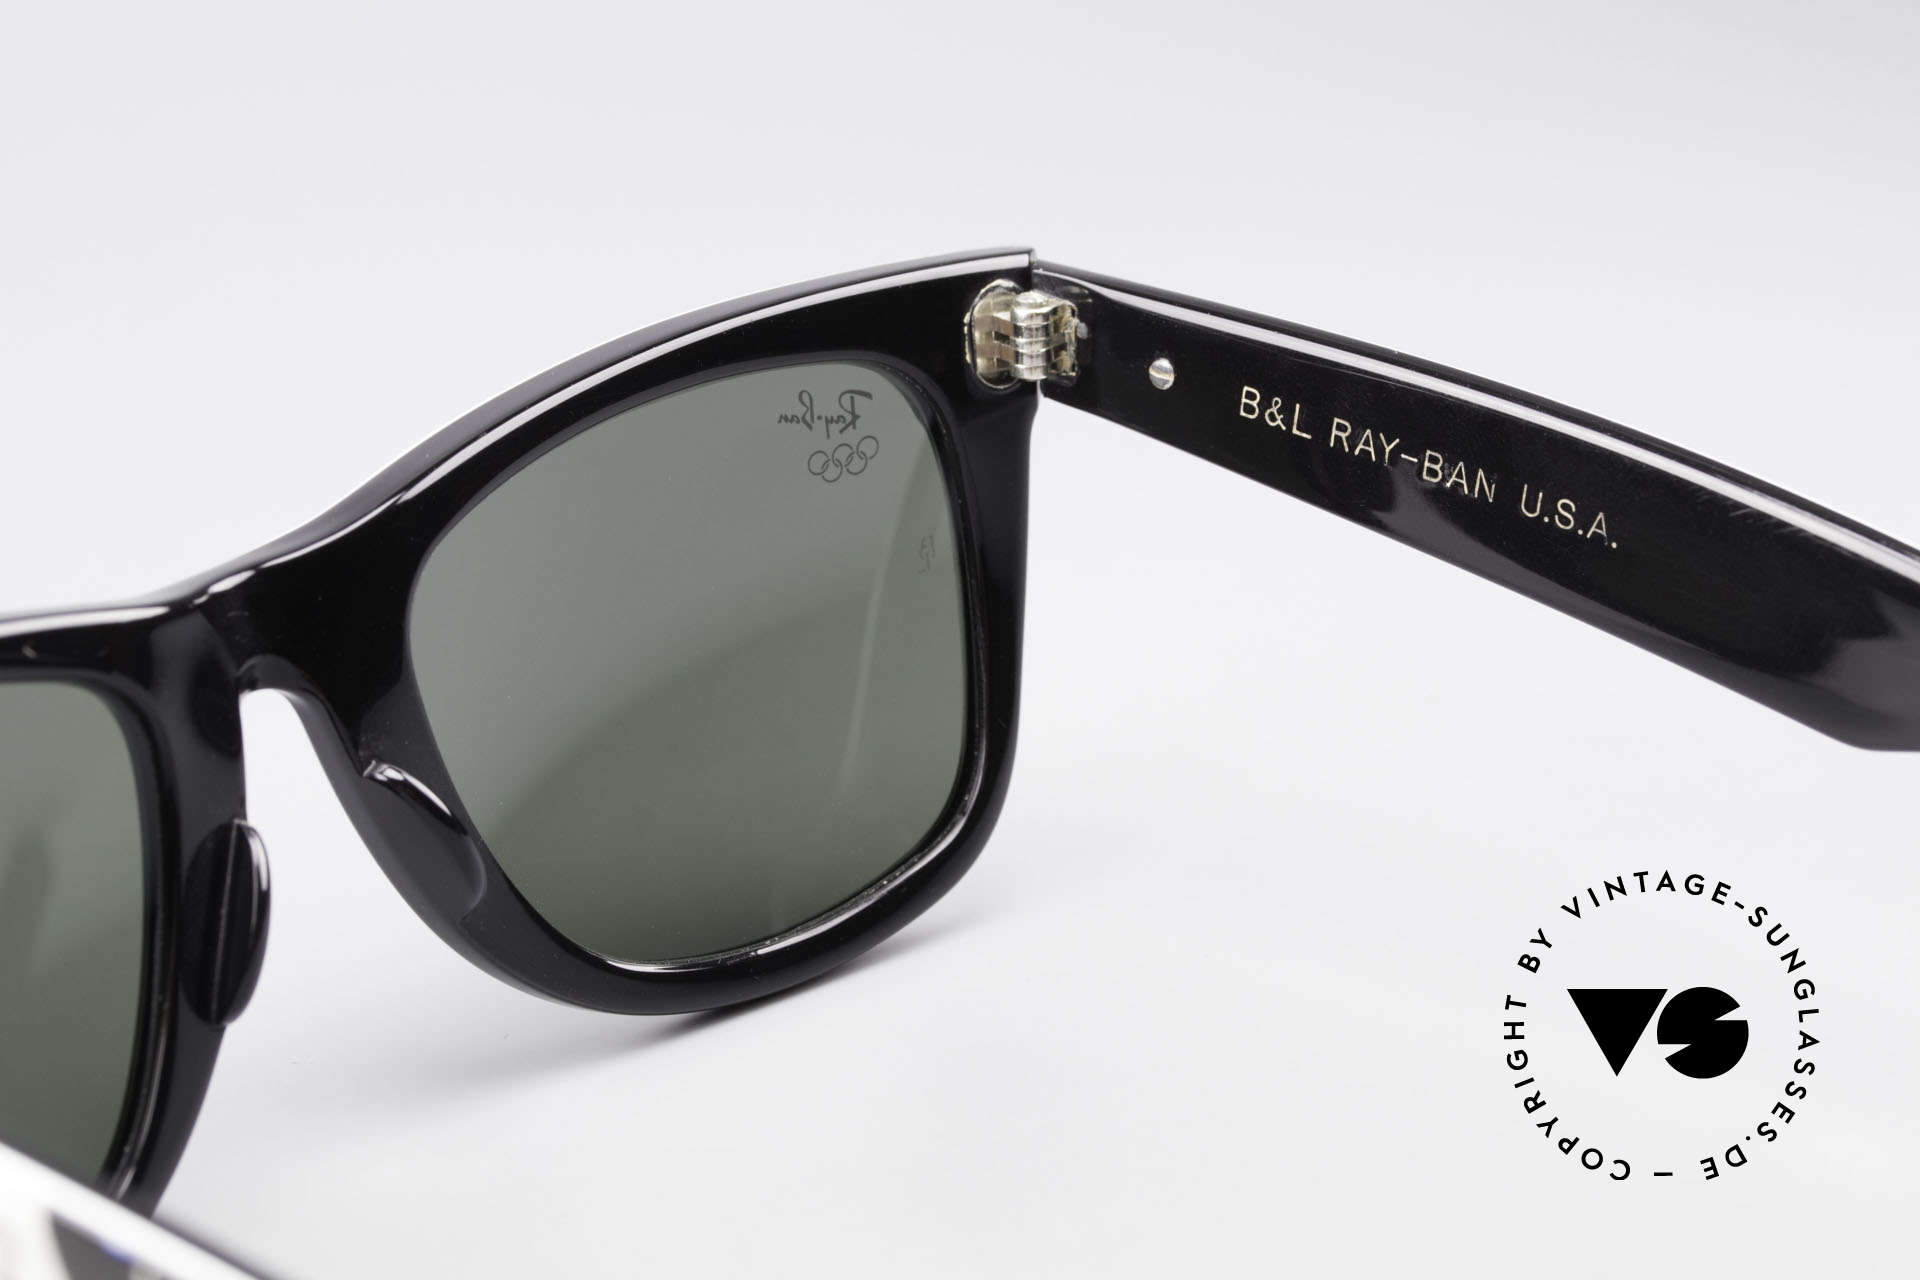 Ray Ban Wayfarer I Olympic Games Barcelona, Size: medium, Made for Men and Women